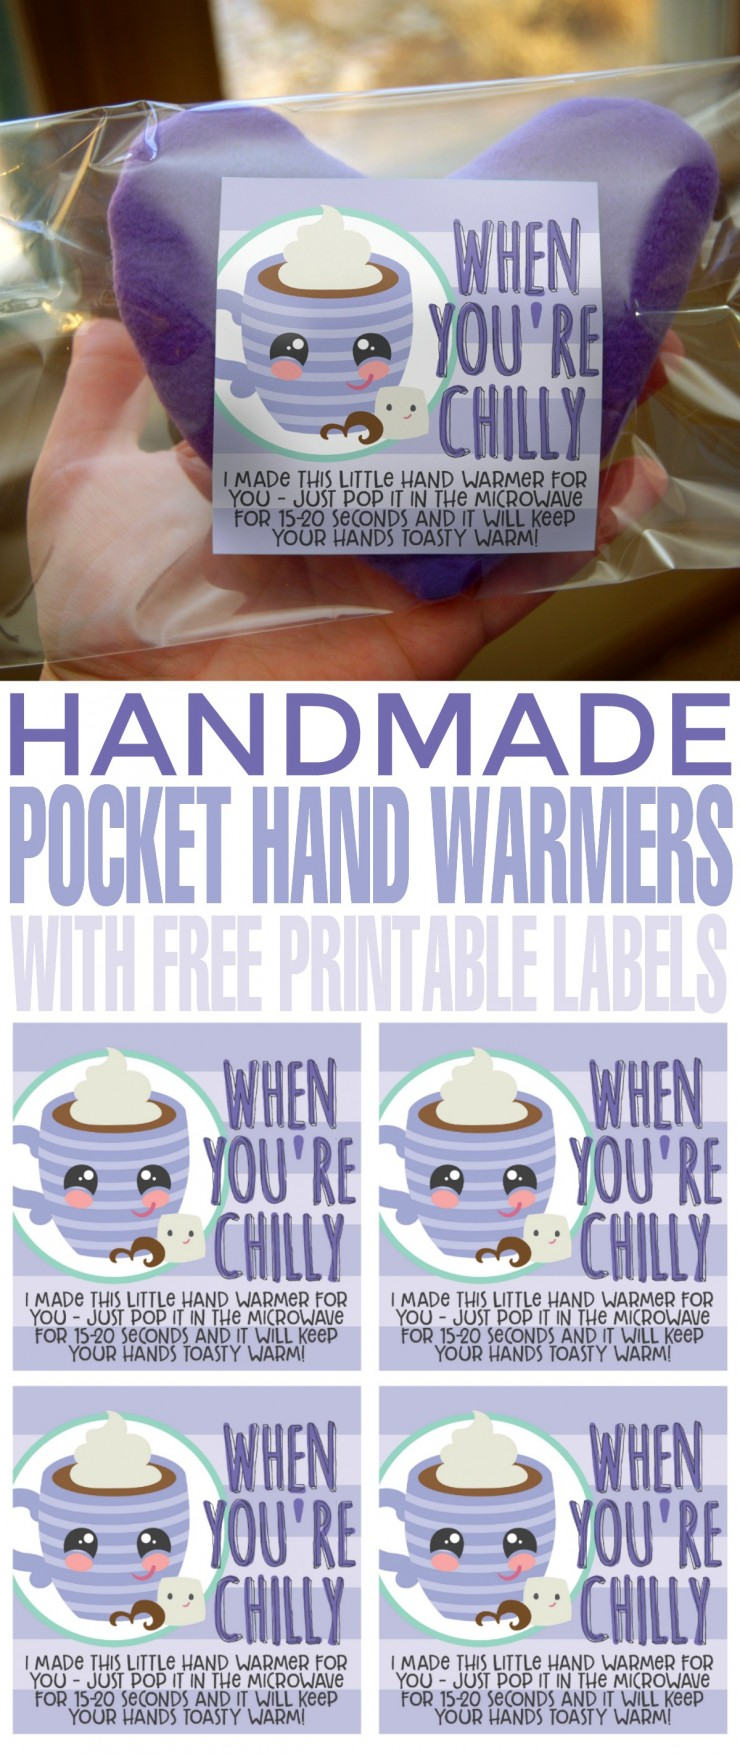 Not only are these DIY Pocket Hand Warmers with Free Printable Labels great as pocket warmers, but they also double as cold packs. Keep a few in your freezer for use as cold compresses!